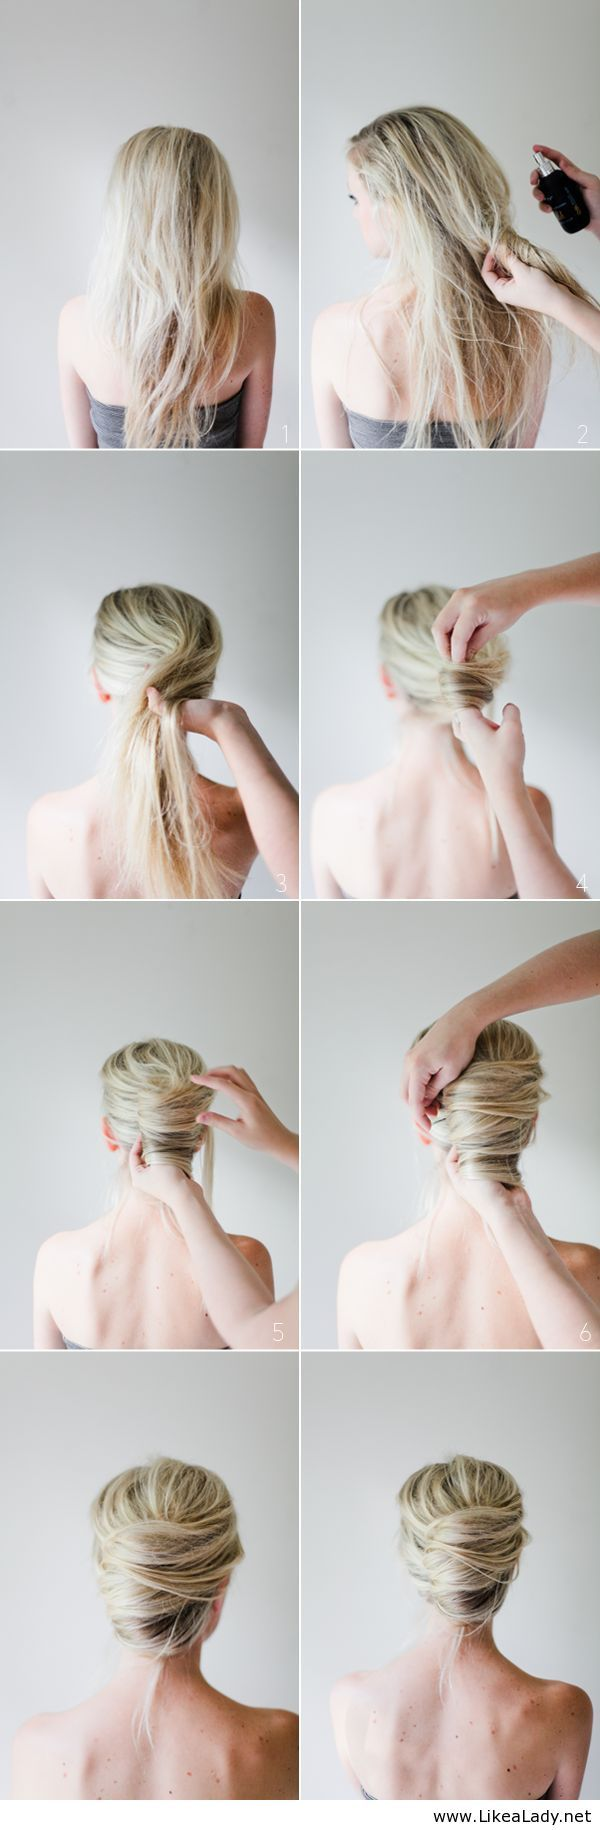 Messy French Twist Tutorial, she is obviously not using her own hands which makes this a little more difficult if one has short arms. D: But I pinz you anyways.